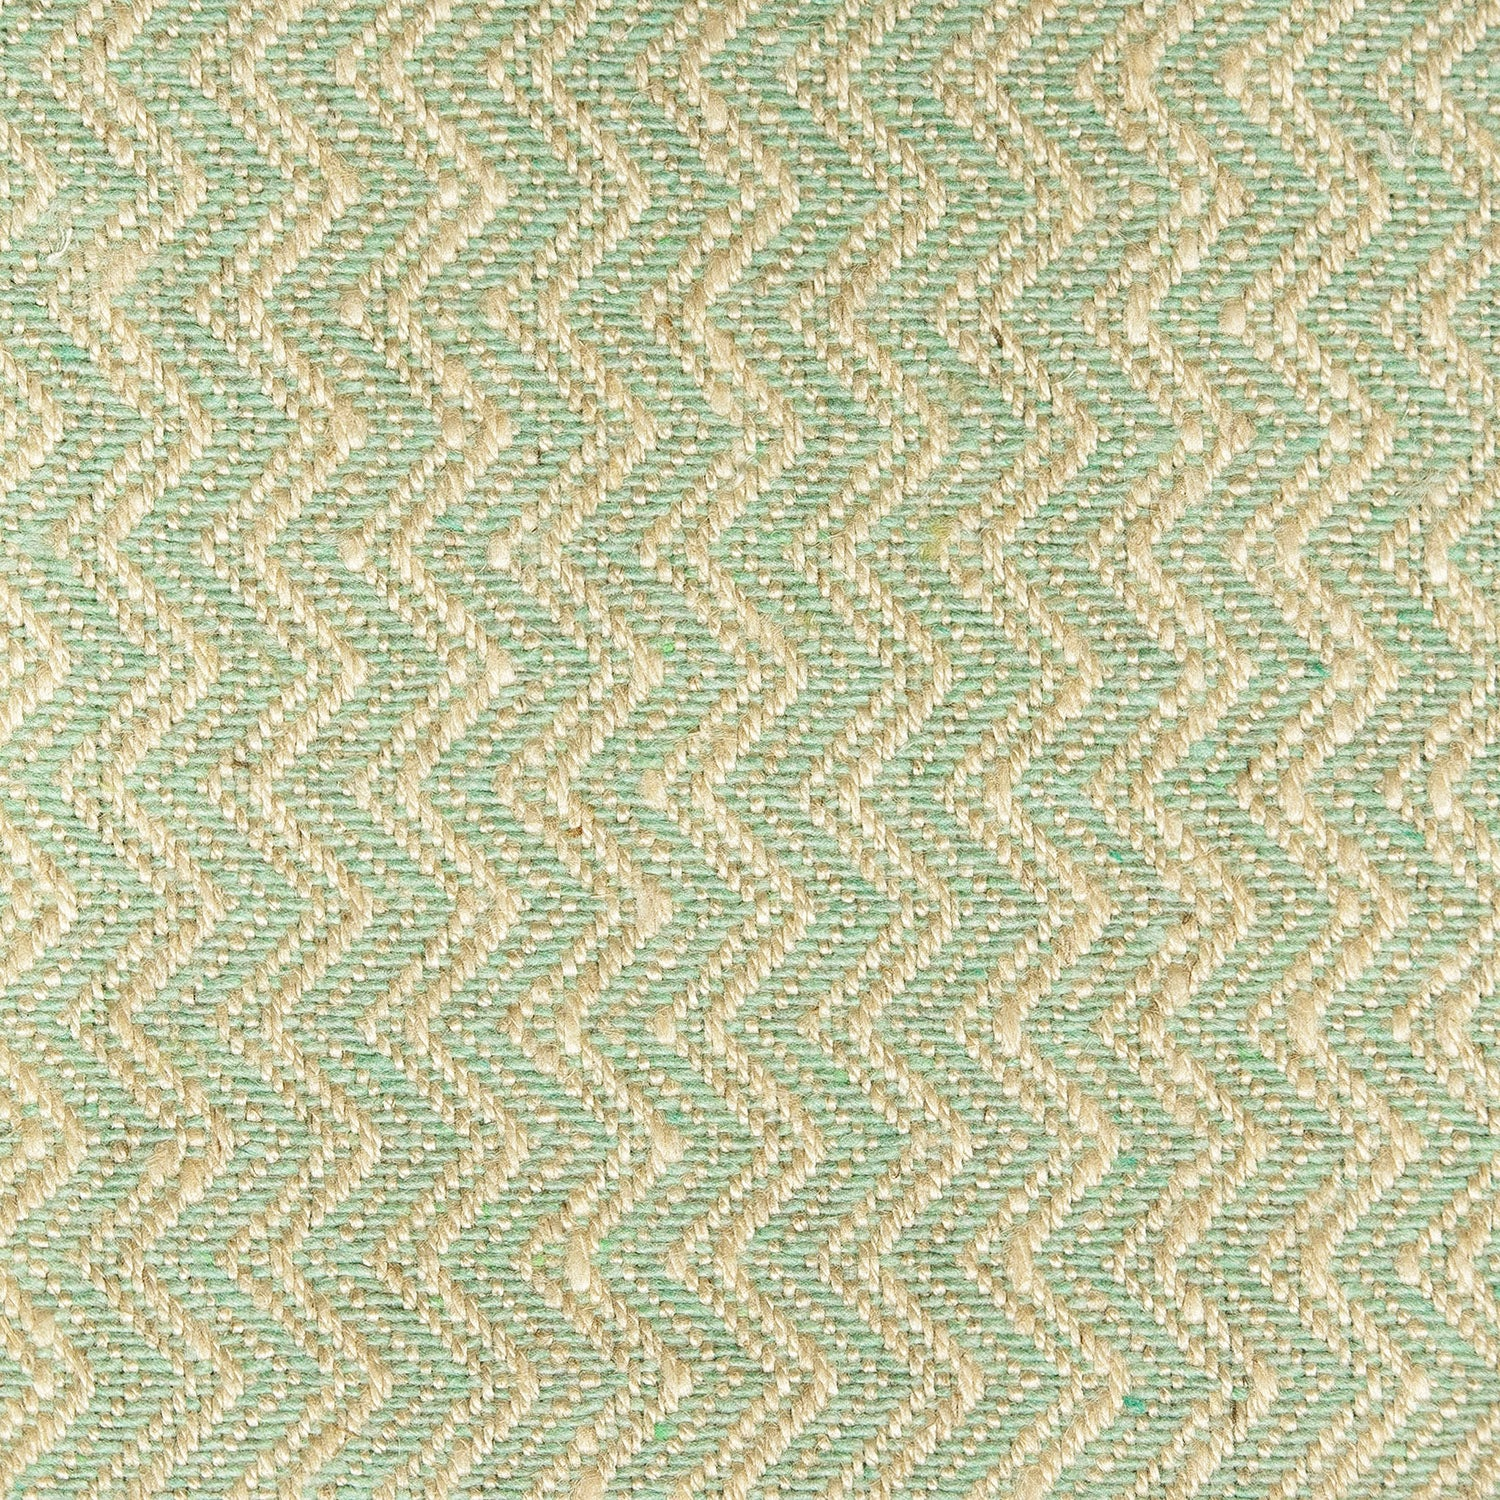 Mint fabric with chevron design for contract or domestic upholstery or curtains